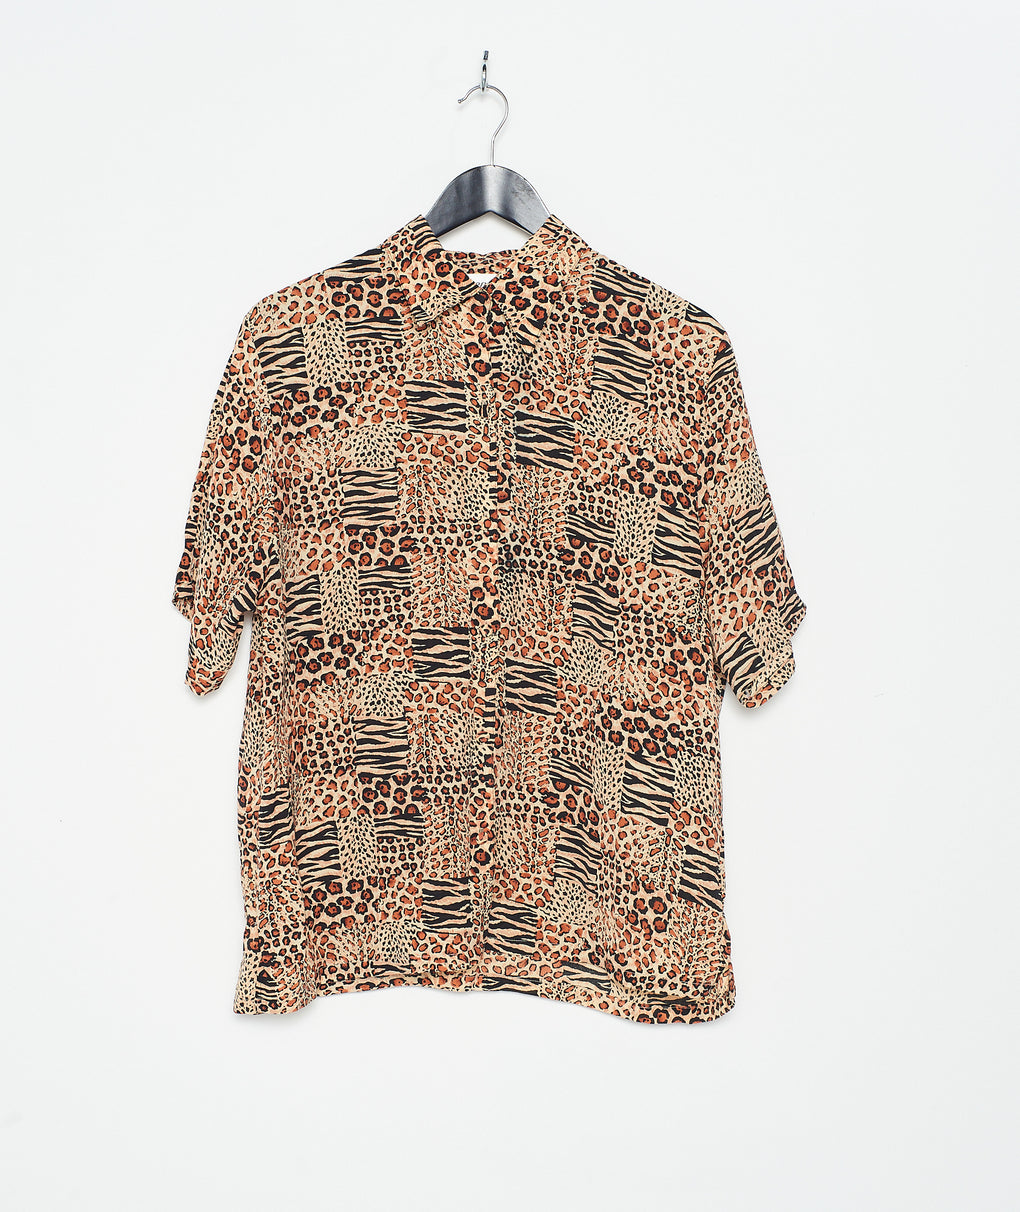 Cleopatra Leopard S/S Shirt (S)